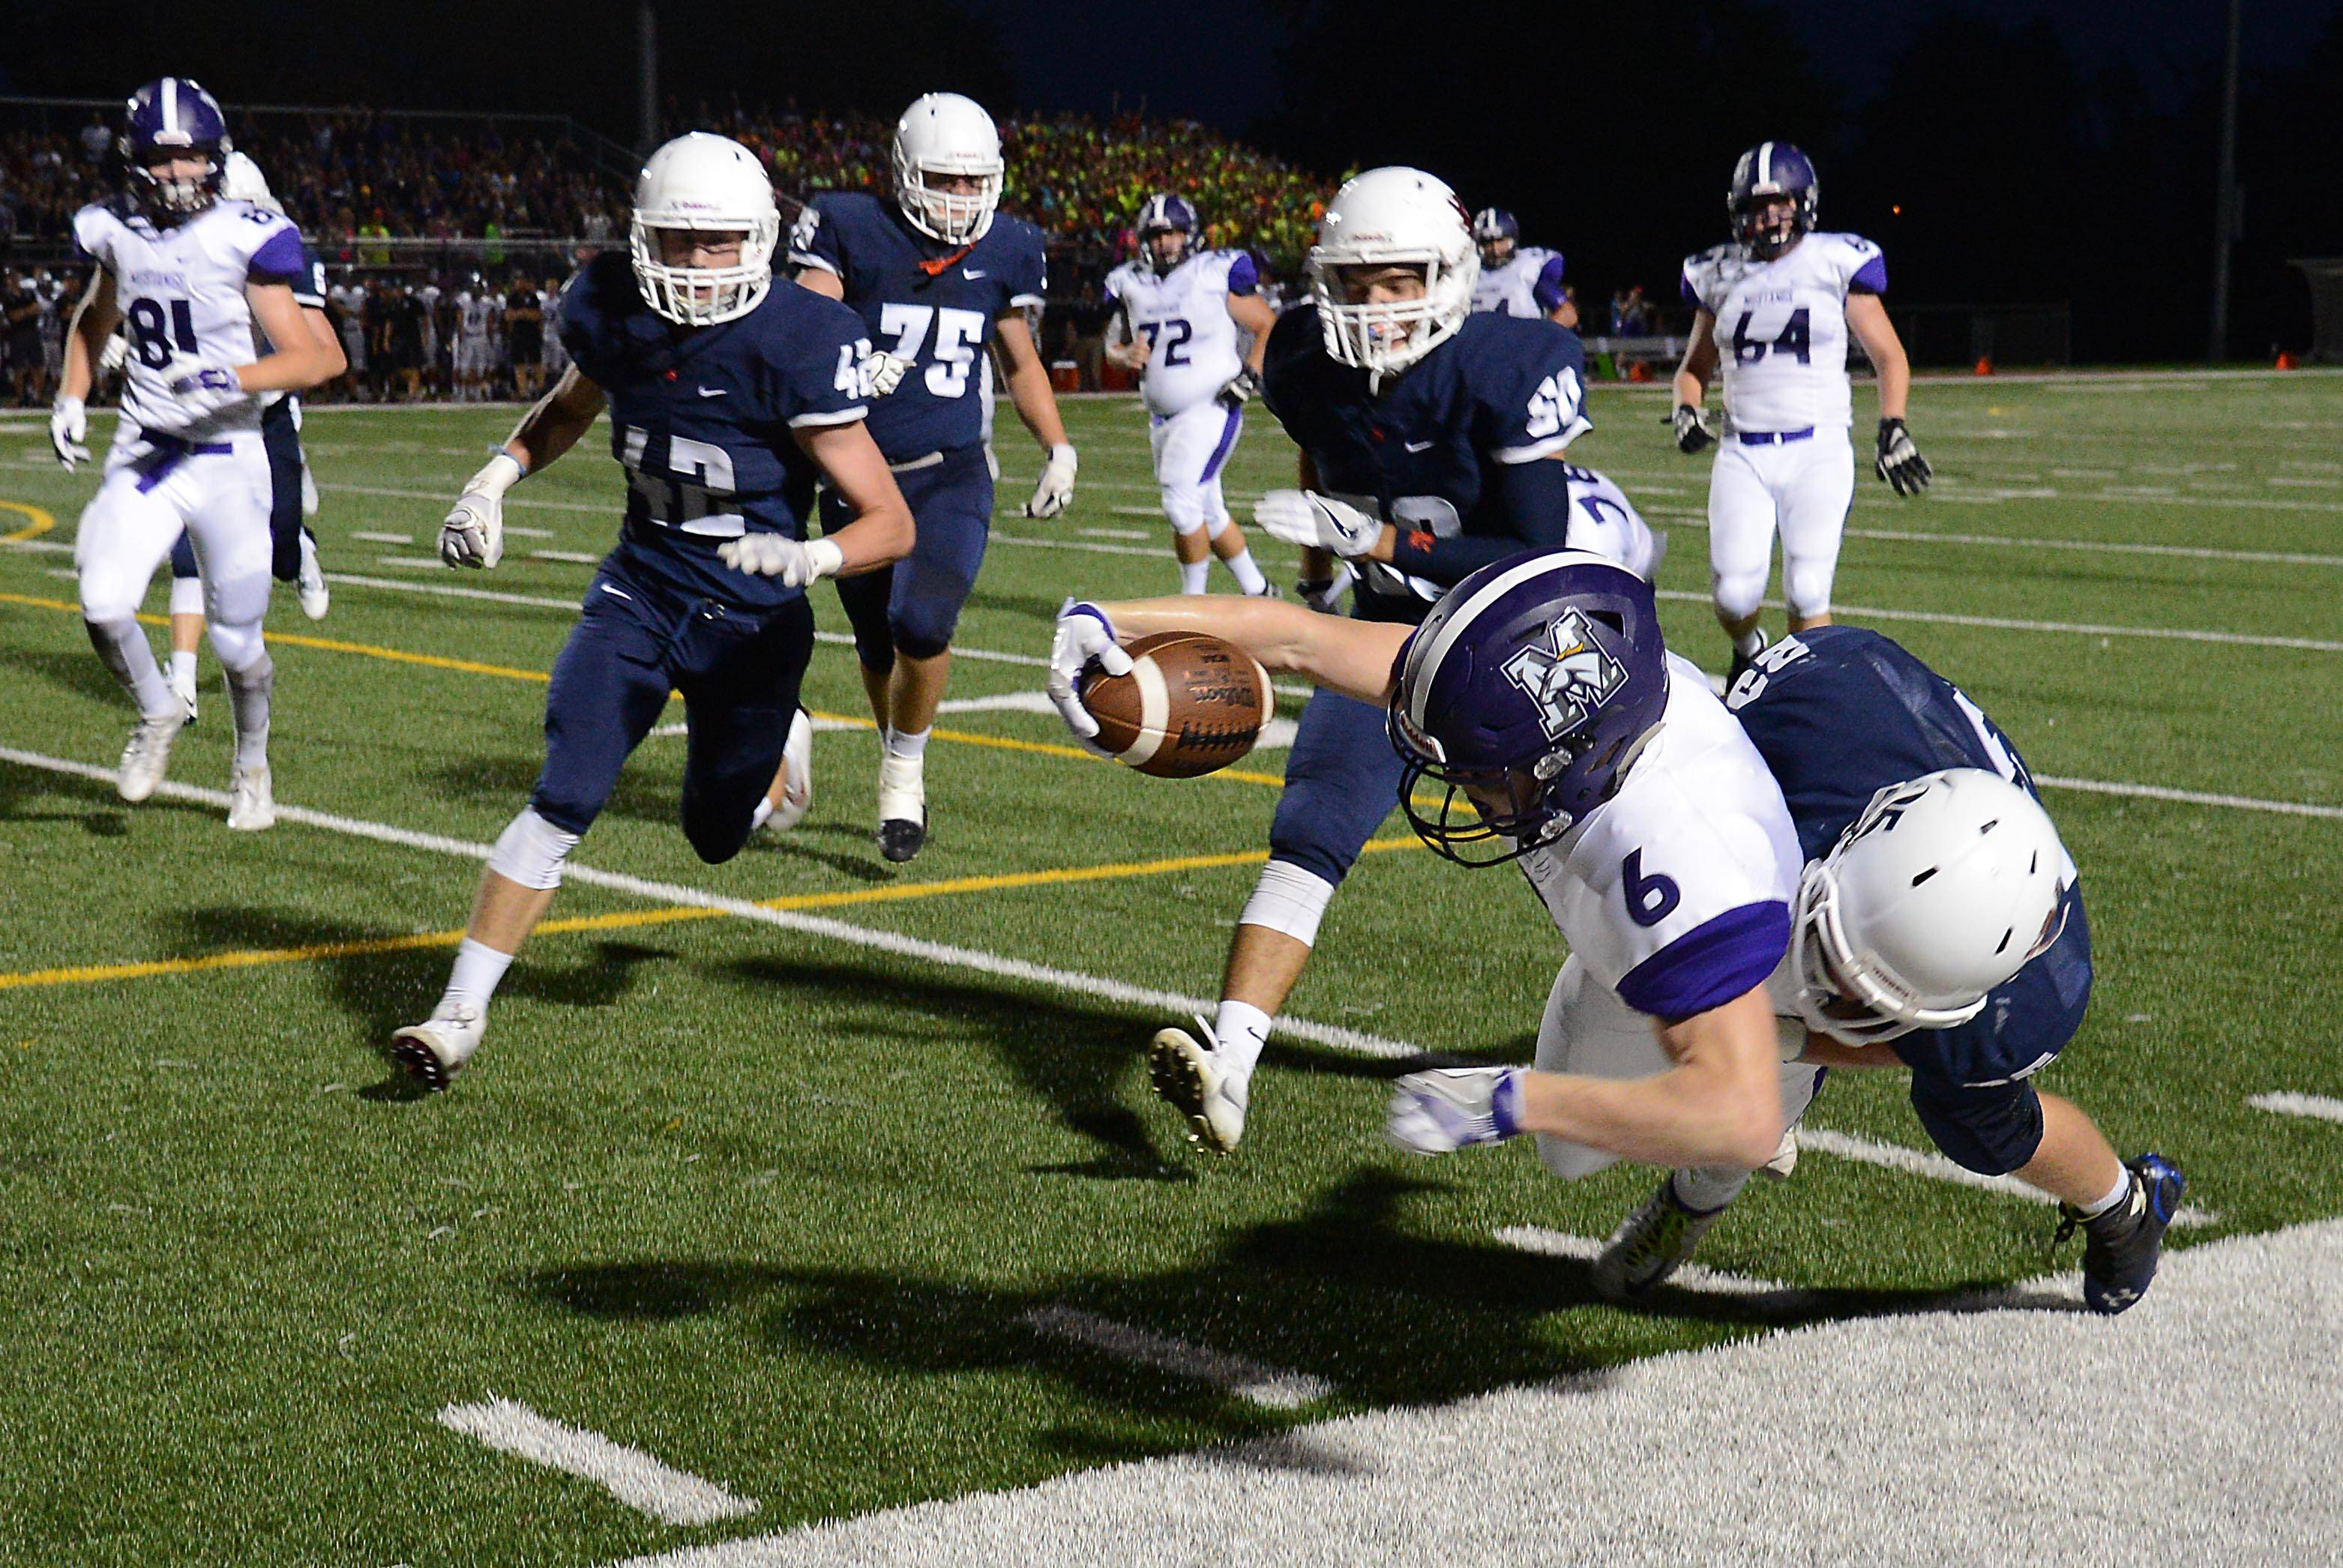 Rolling Meadows' Nick Delporte is brought down at the 3-yard line by St. Viator's Matt Dzuibyk early in the game Friday in Arlington Heights. Delporte then scored on a handoff and scored the 2 extra points on a screen pass.